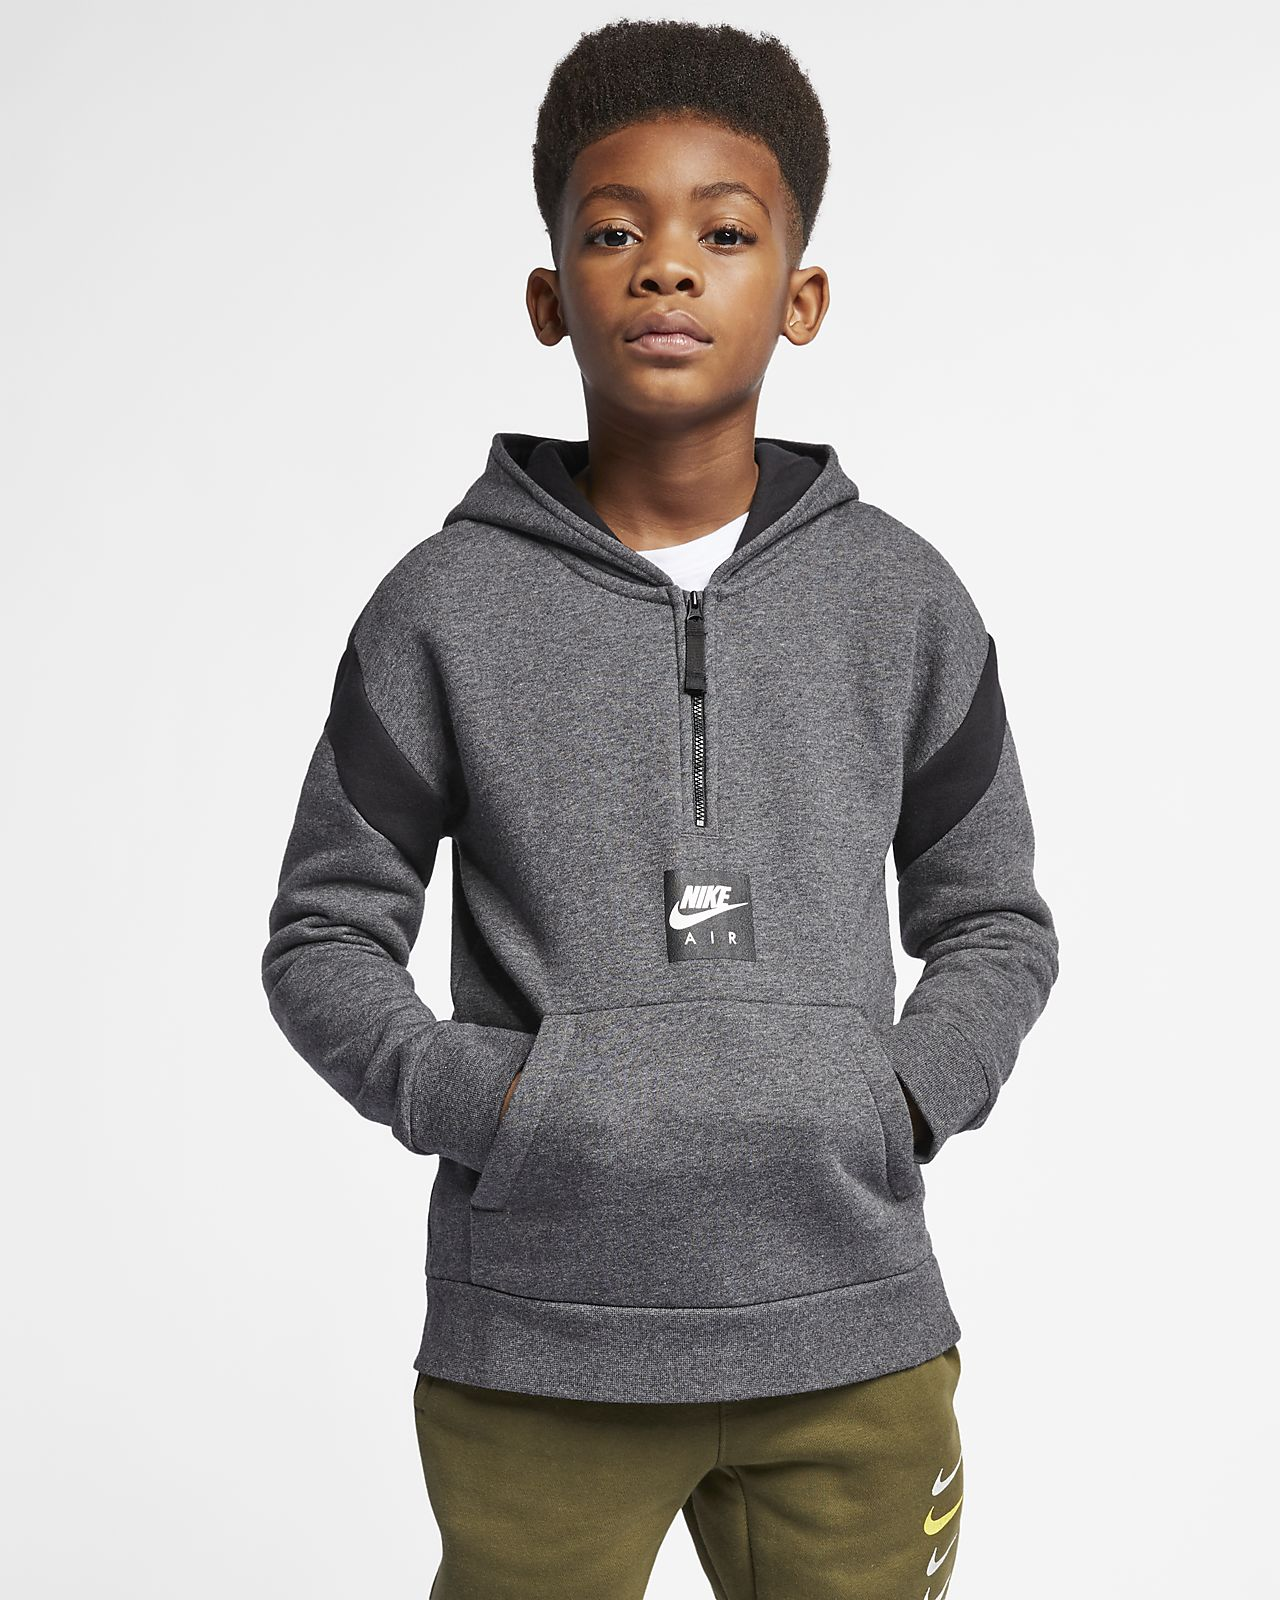 f5f32f3a683f Nike Air Older Kids  (Boys ) Half-Zip Hoodie. Nike.com GB